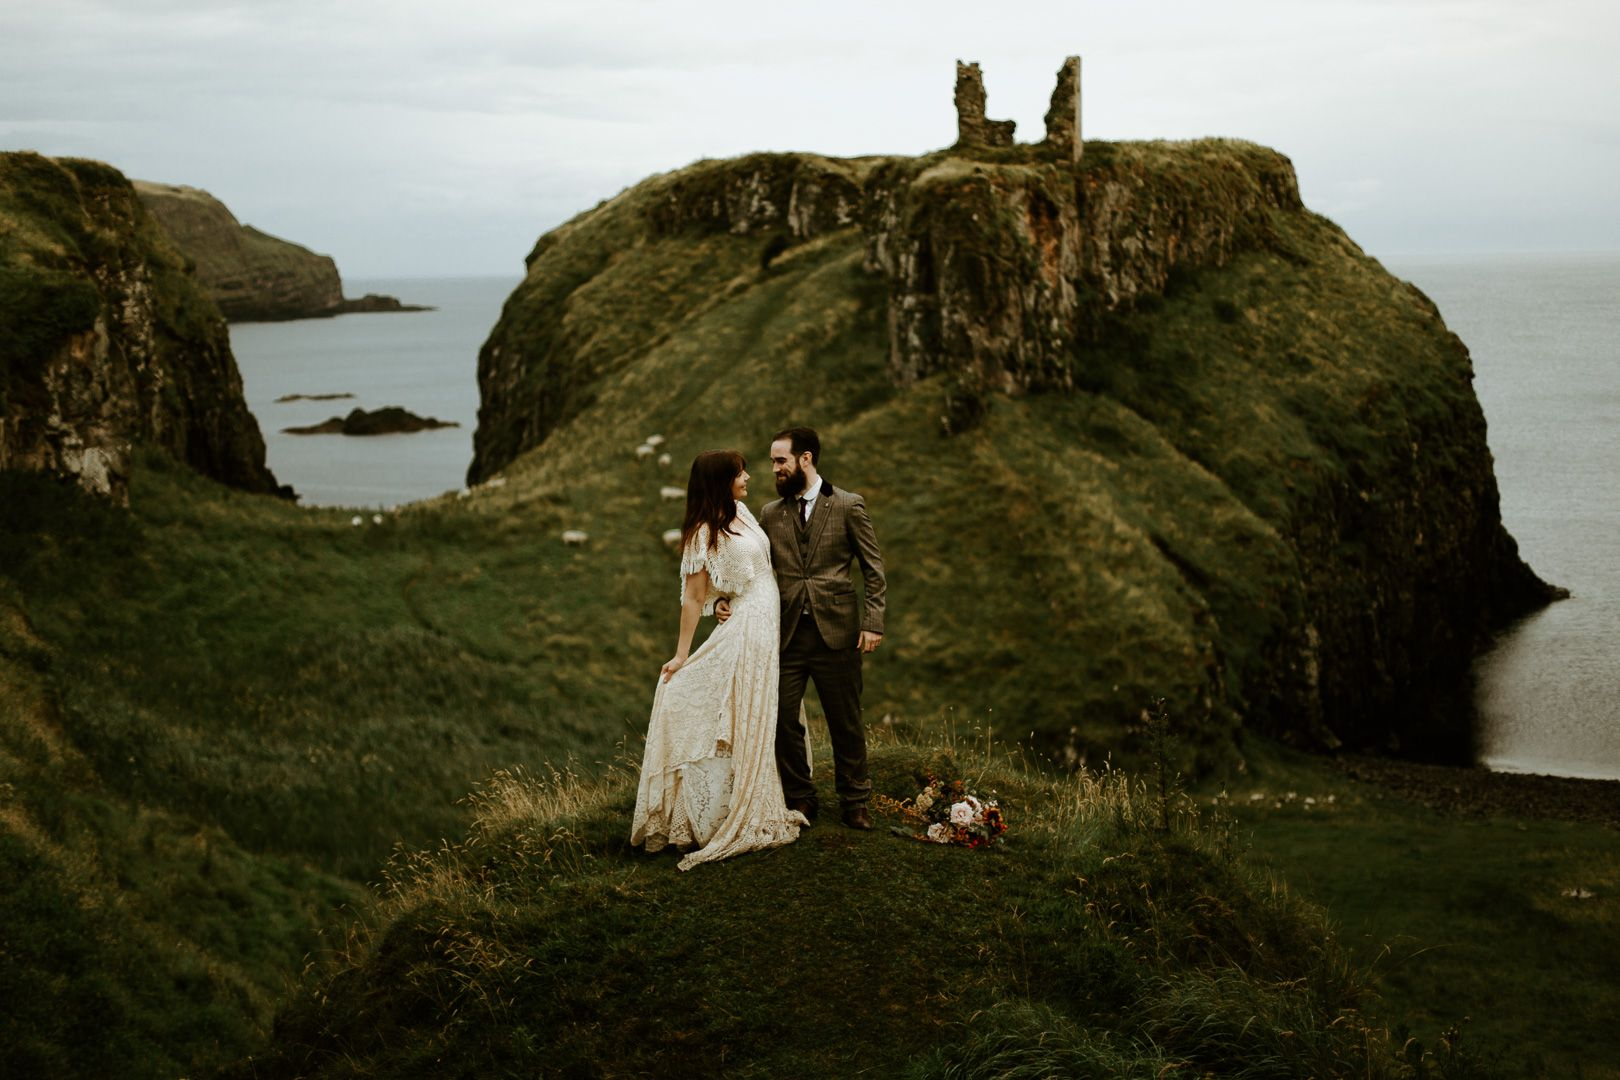 Couple eloping at Dunseverick castle in Northern Ireland by the sea on the cliffs wearing a boho wedding dress